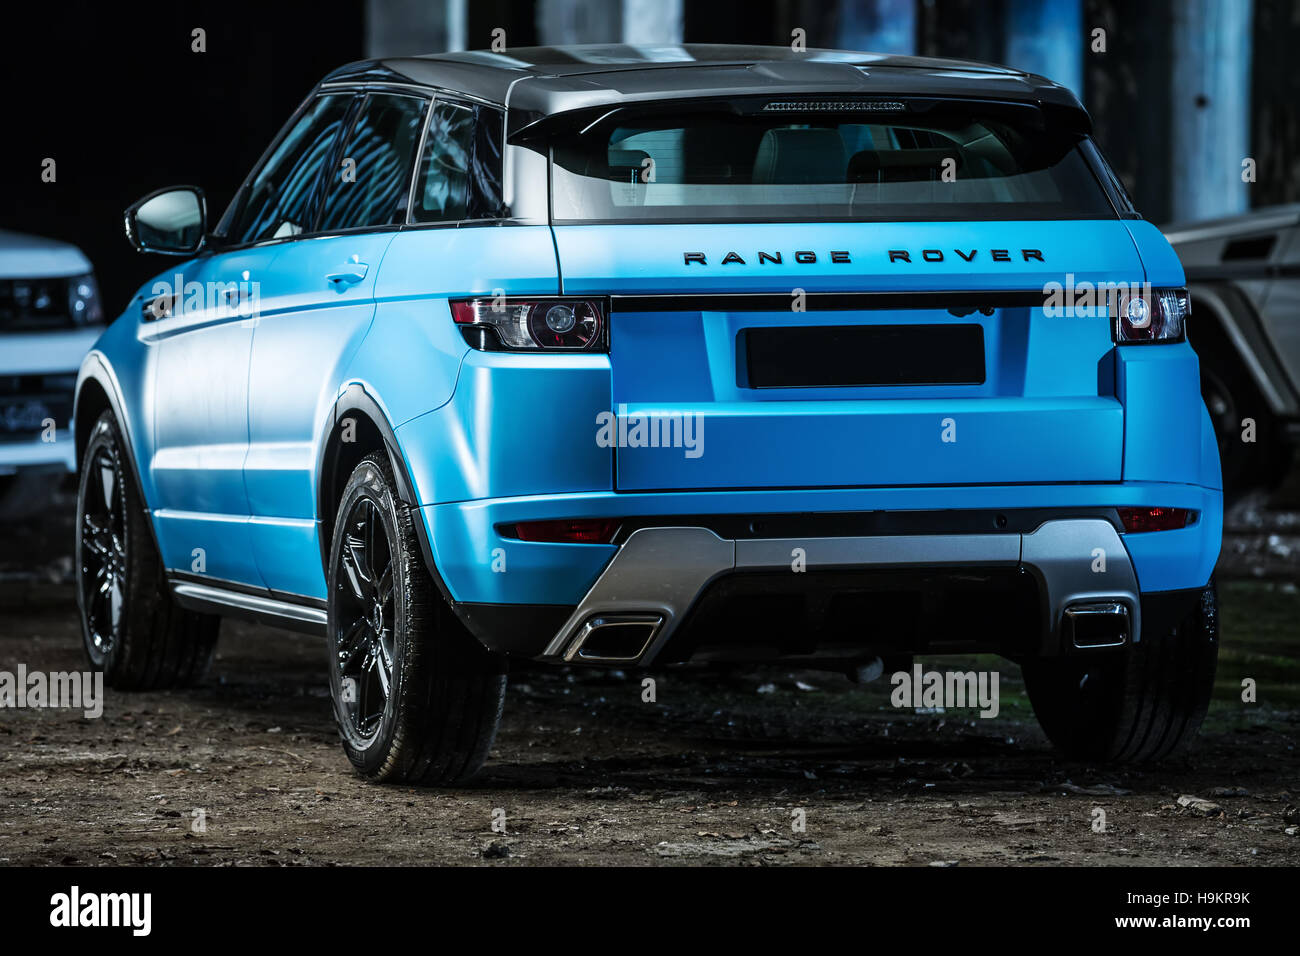 range rover evoque tuning stock photo 126439871 alamy. Black Bedroom Furniture Sets. Home Design Ideas